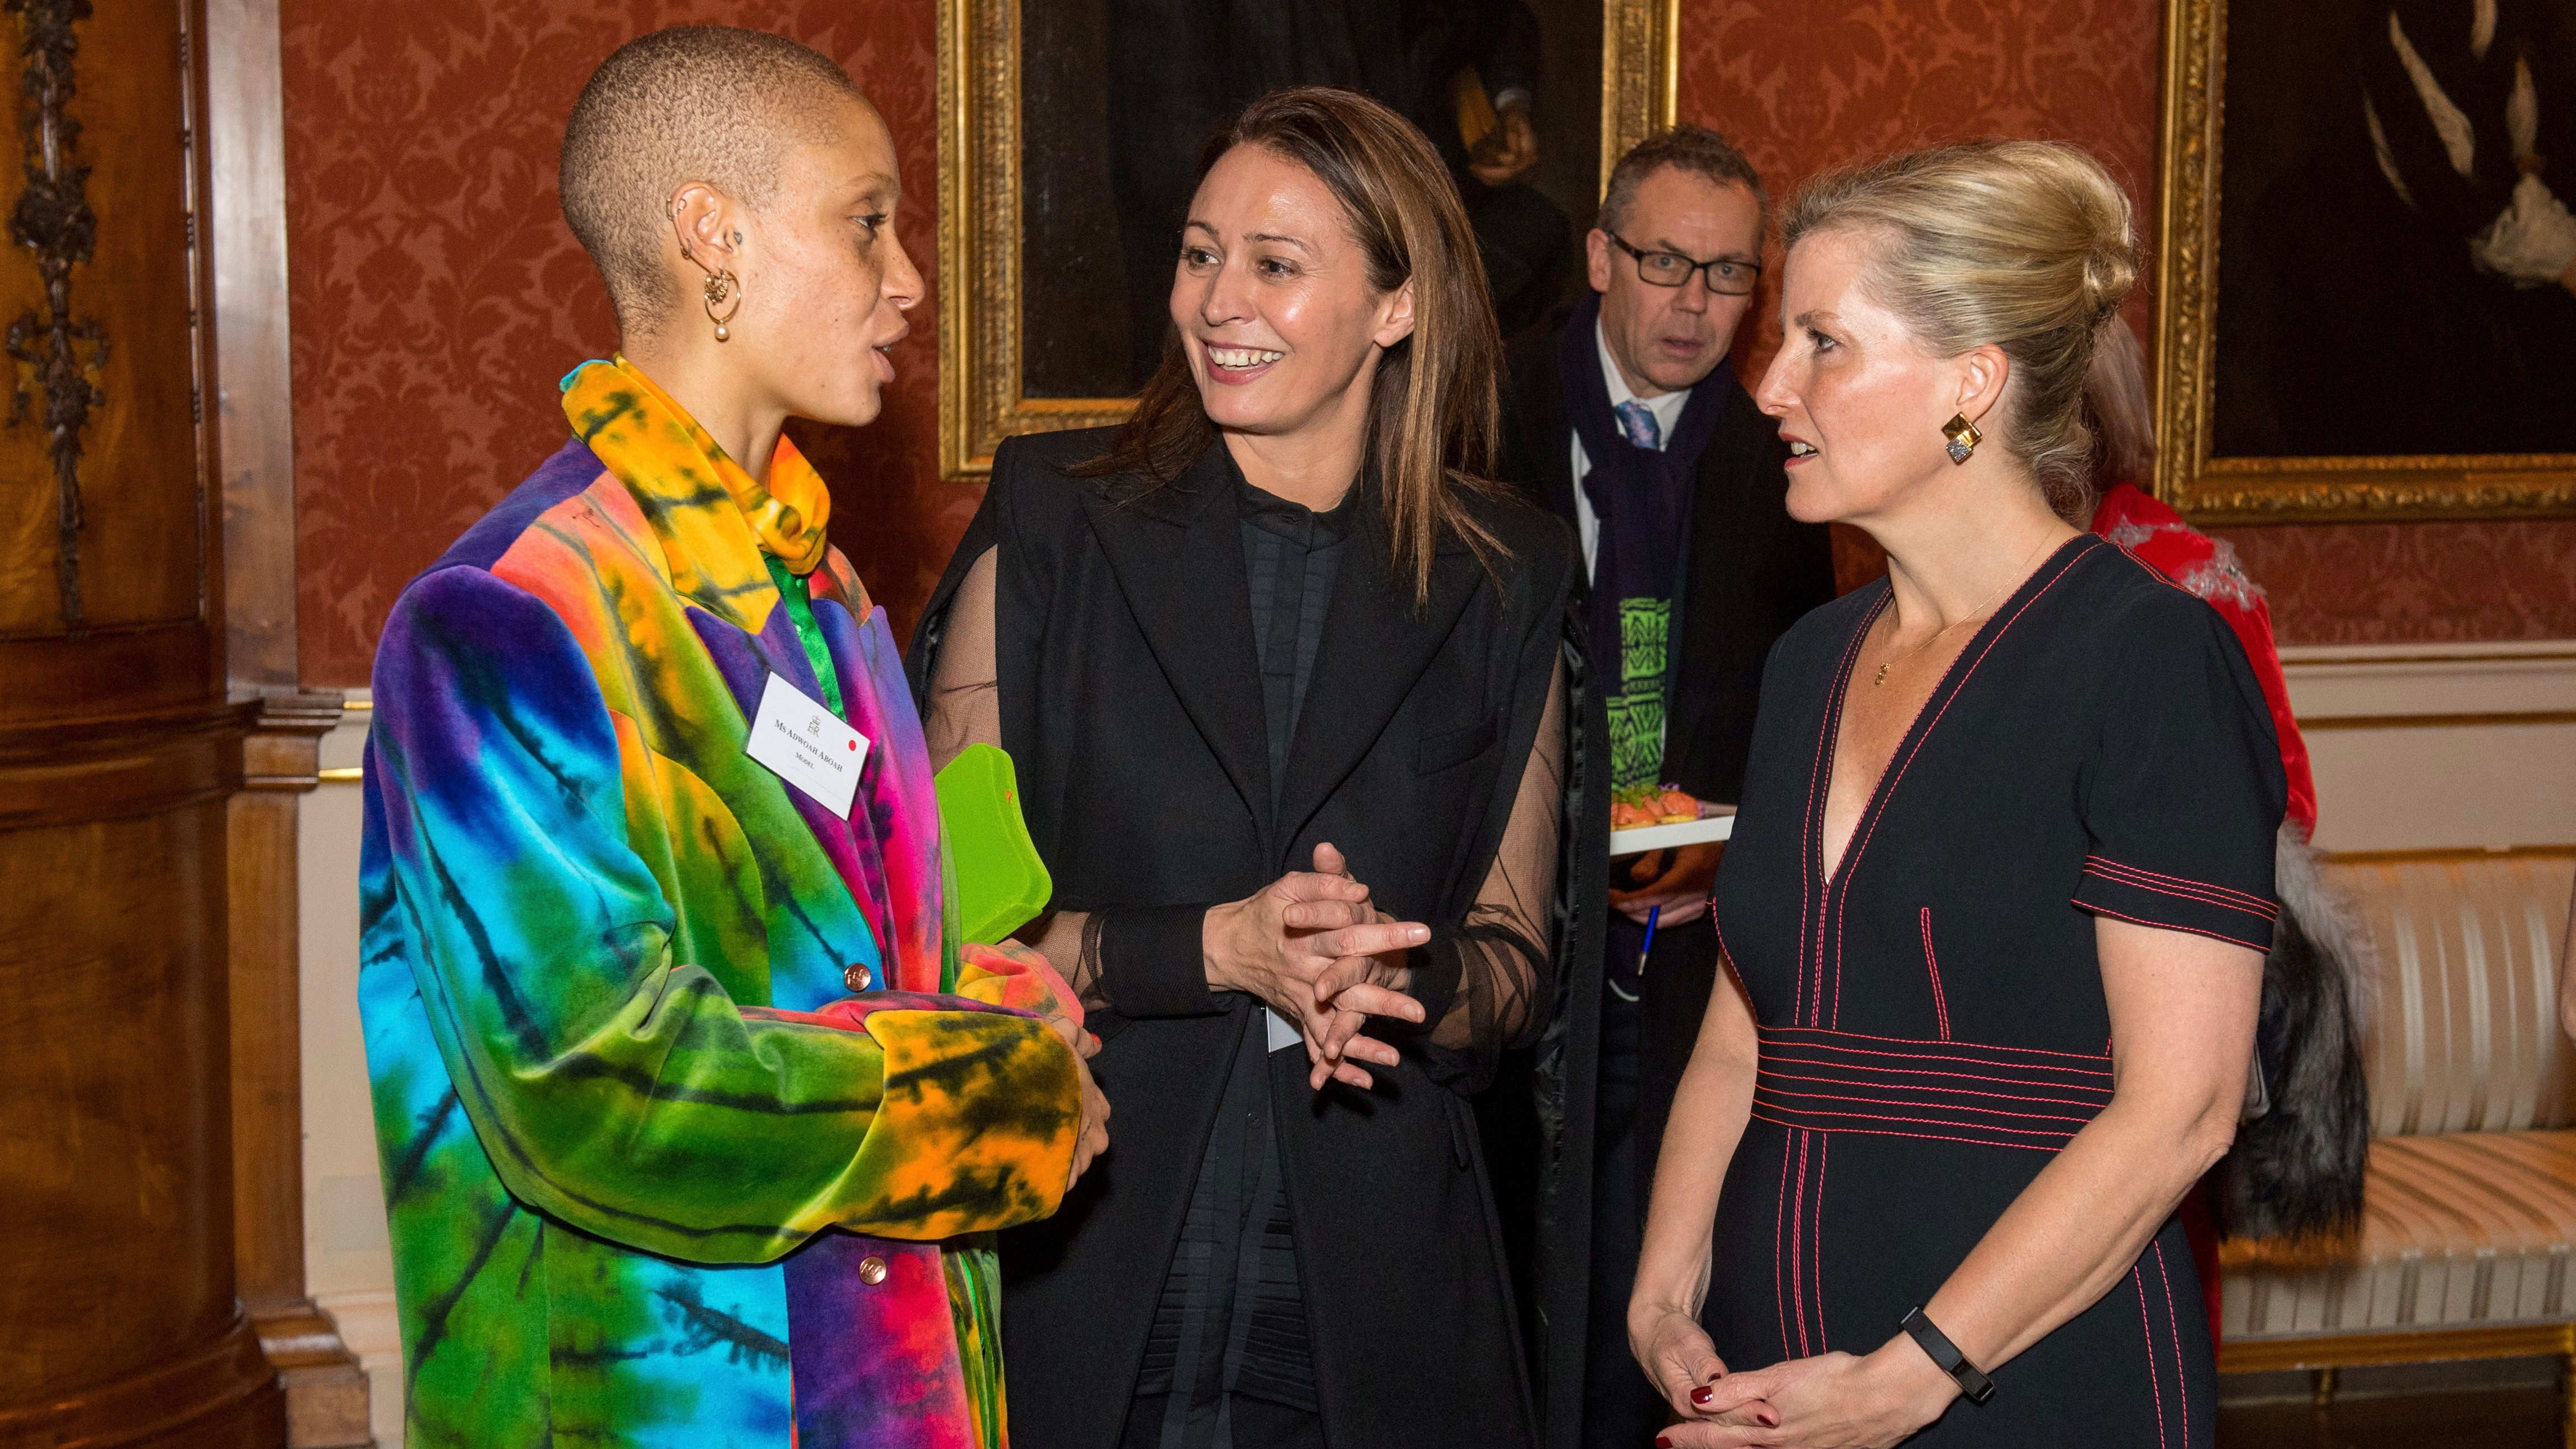 Royalty and models at the British Fashion Exchange/